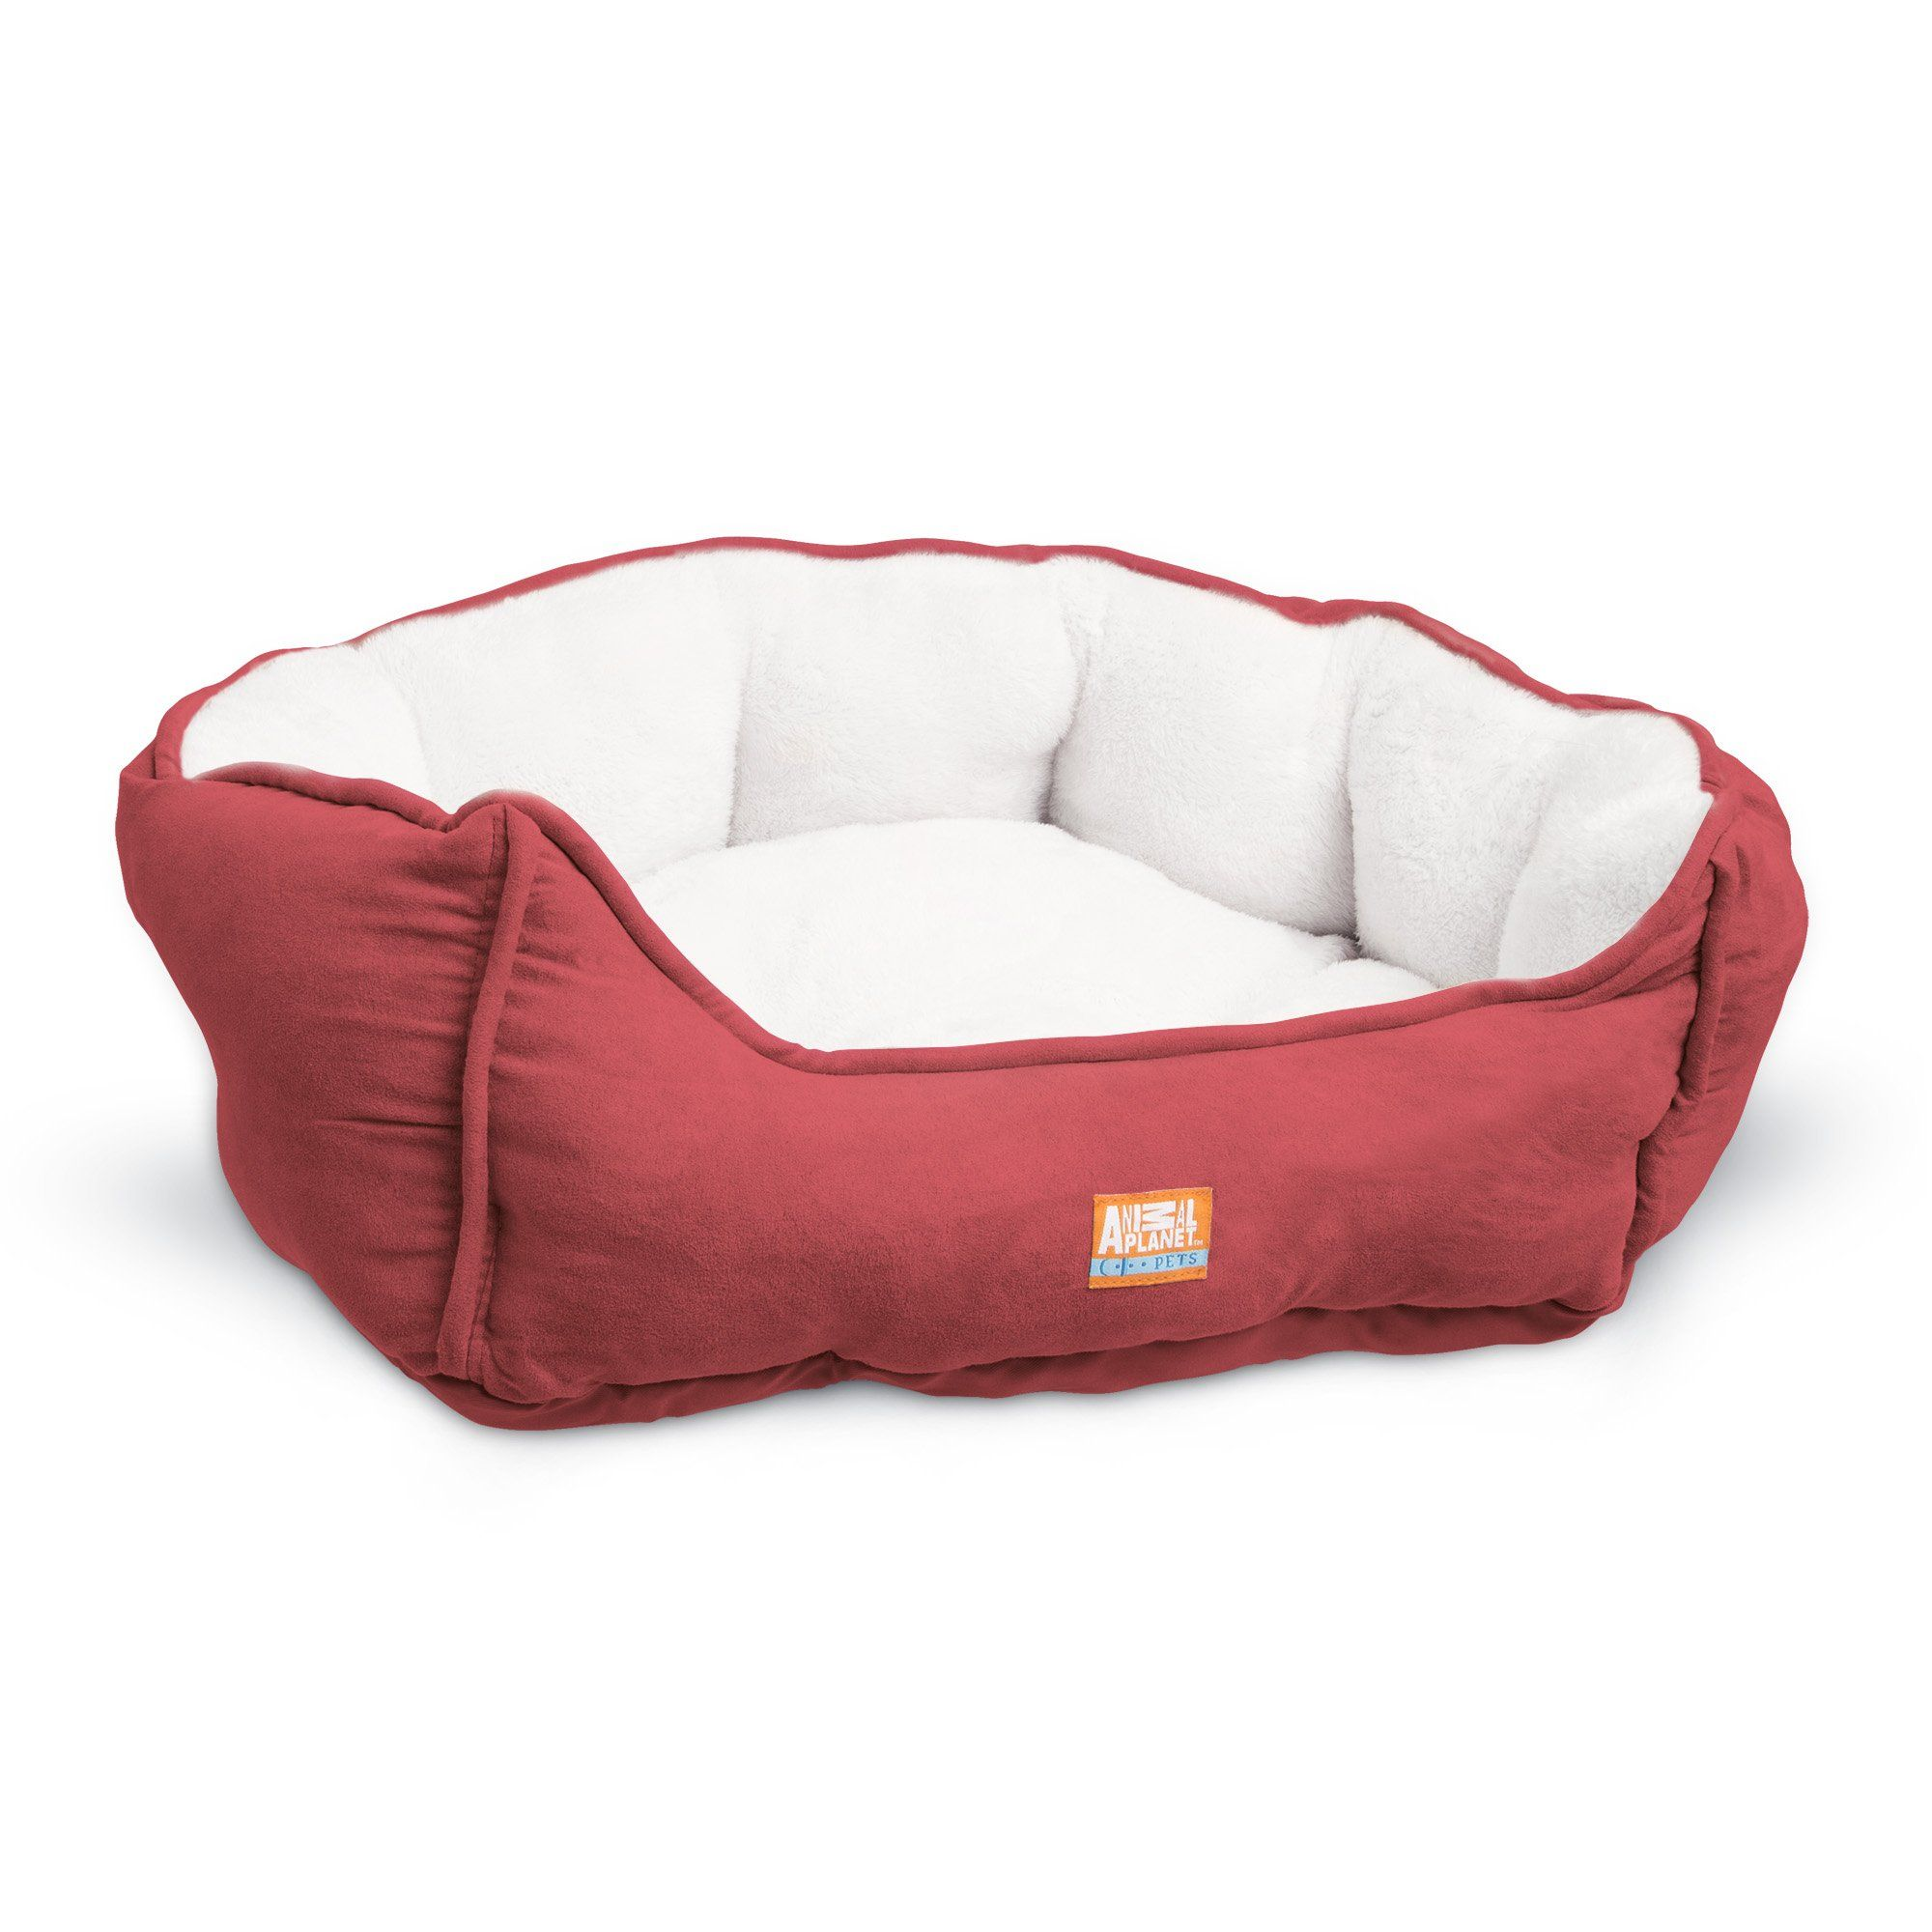 Animal Planet Round Plush Micro Suede And Sherpa Bolster Pet Bed Dogs And Cats Puppies Small And Toy Breeds Cuddly Dog Pet Beds Dog Bed Furniture Dog Sofa Bed